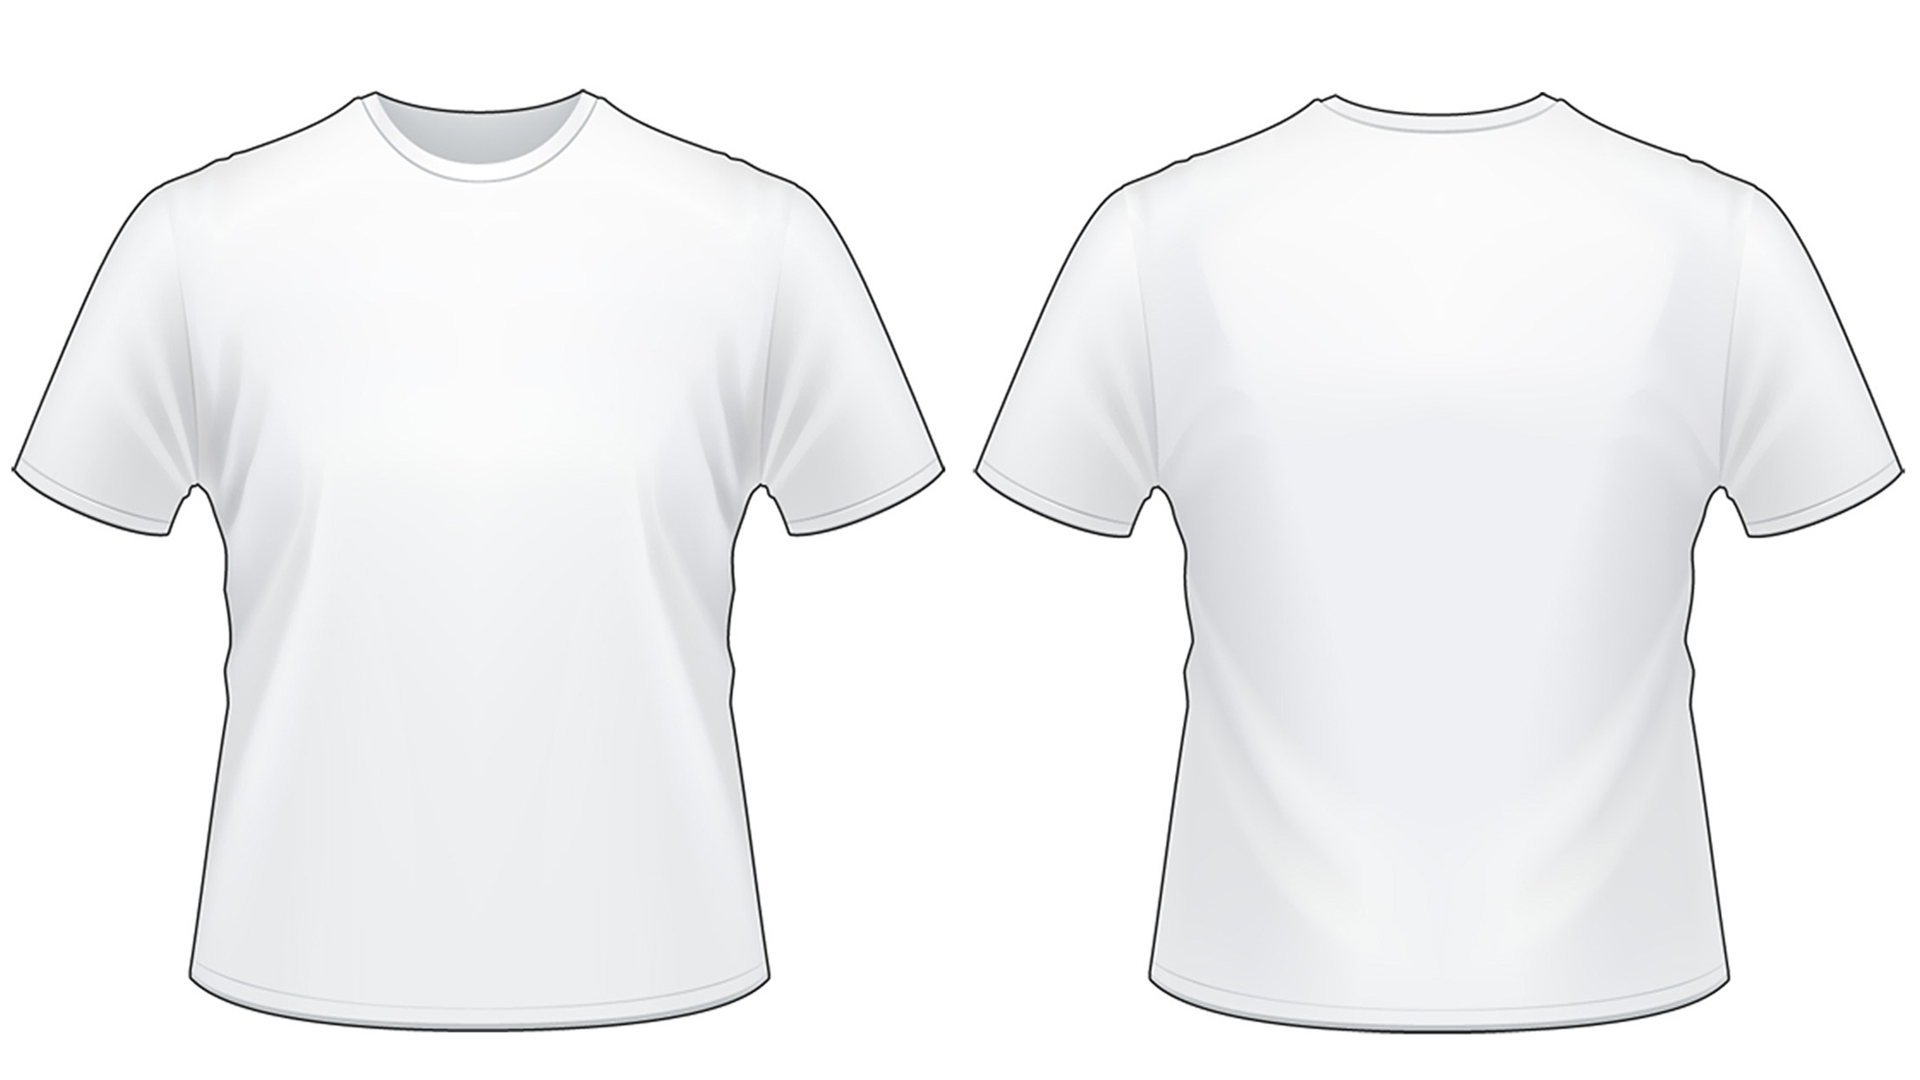 Blank Tshirt Template Worksheet in PNG | HD Wallpapers ...